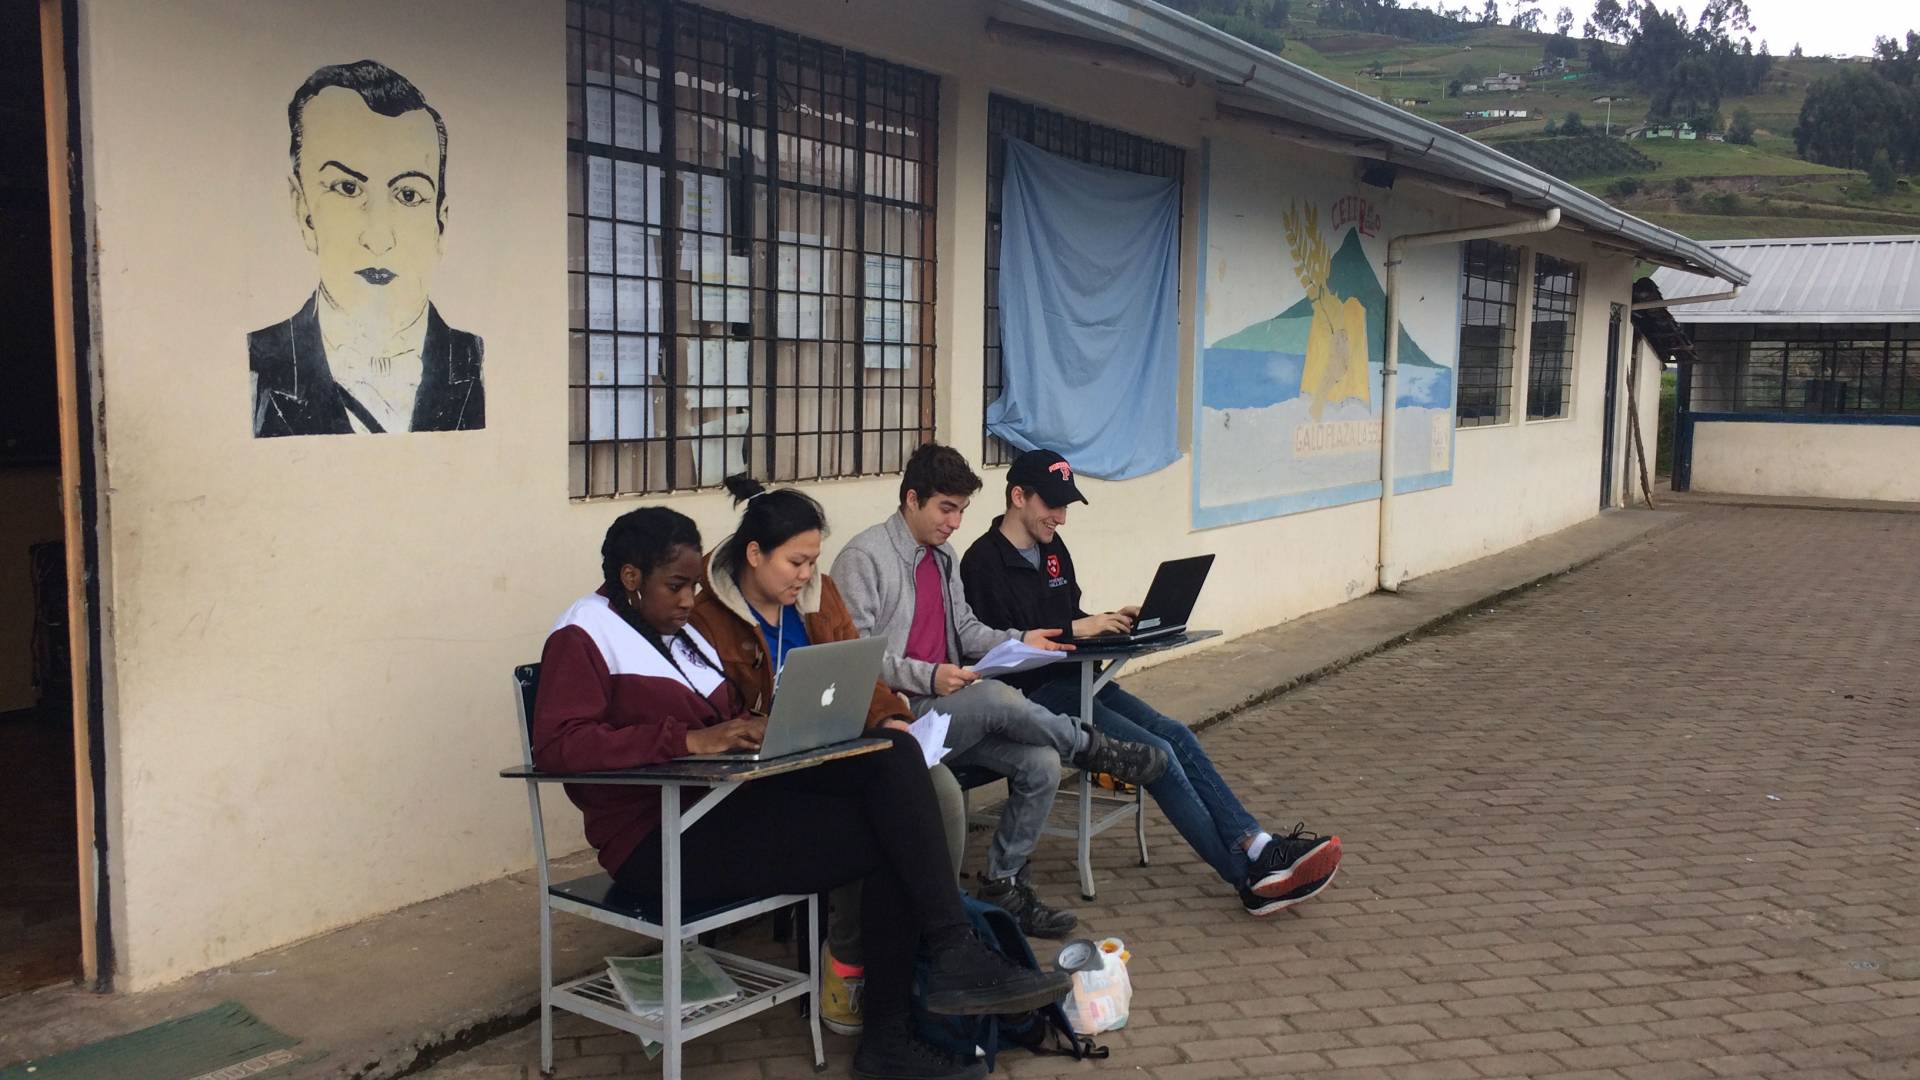 Students working on laptops outside in Ecuador